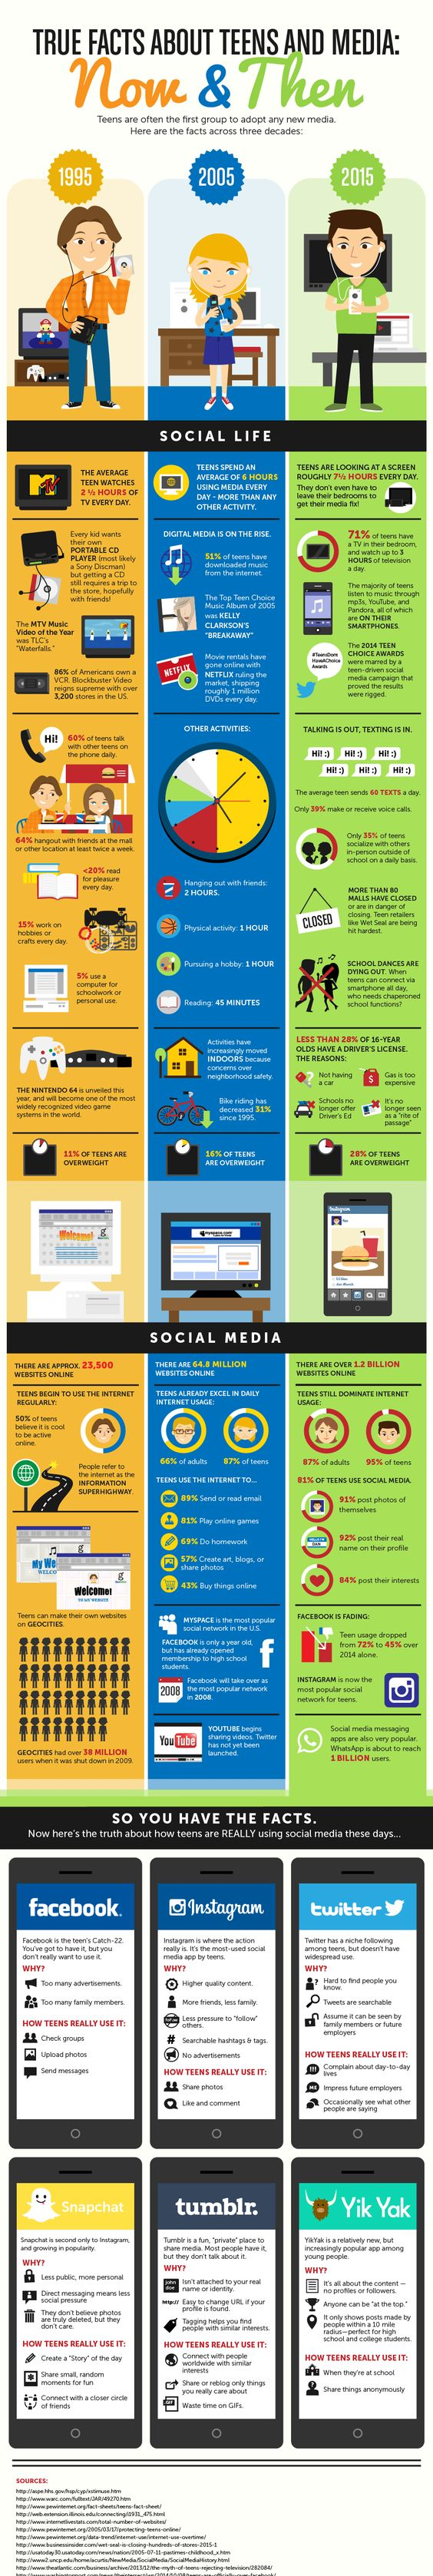 True Facts About Teens and Media, Now and Then #infographic ~ Visualistan